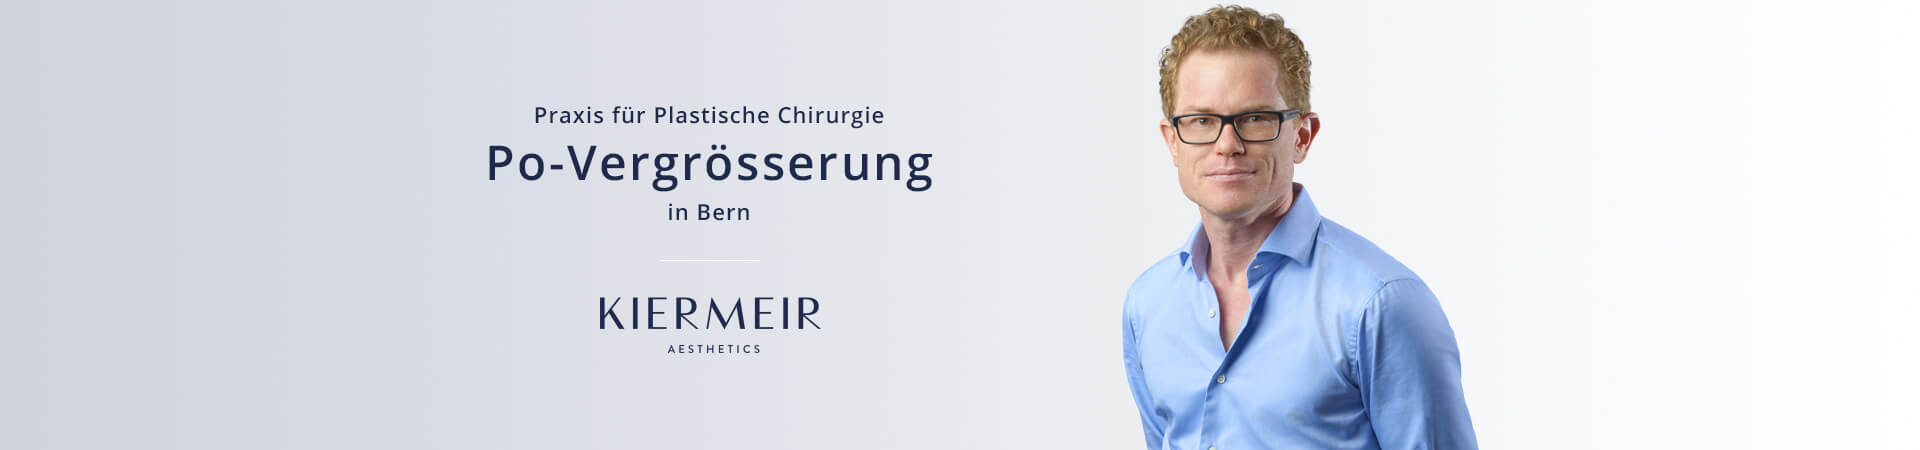 Po-Vergrösserung in Bern - Dr. David Kiermeir